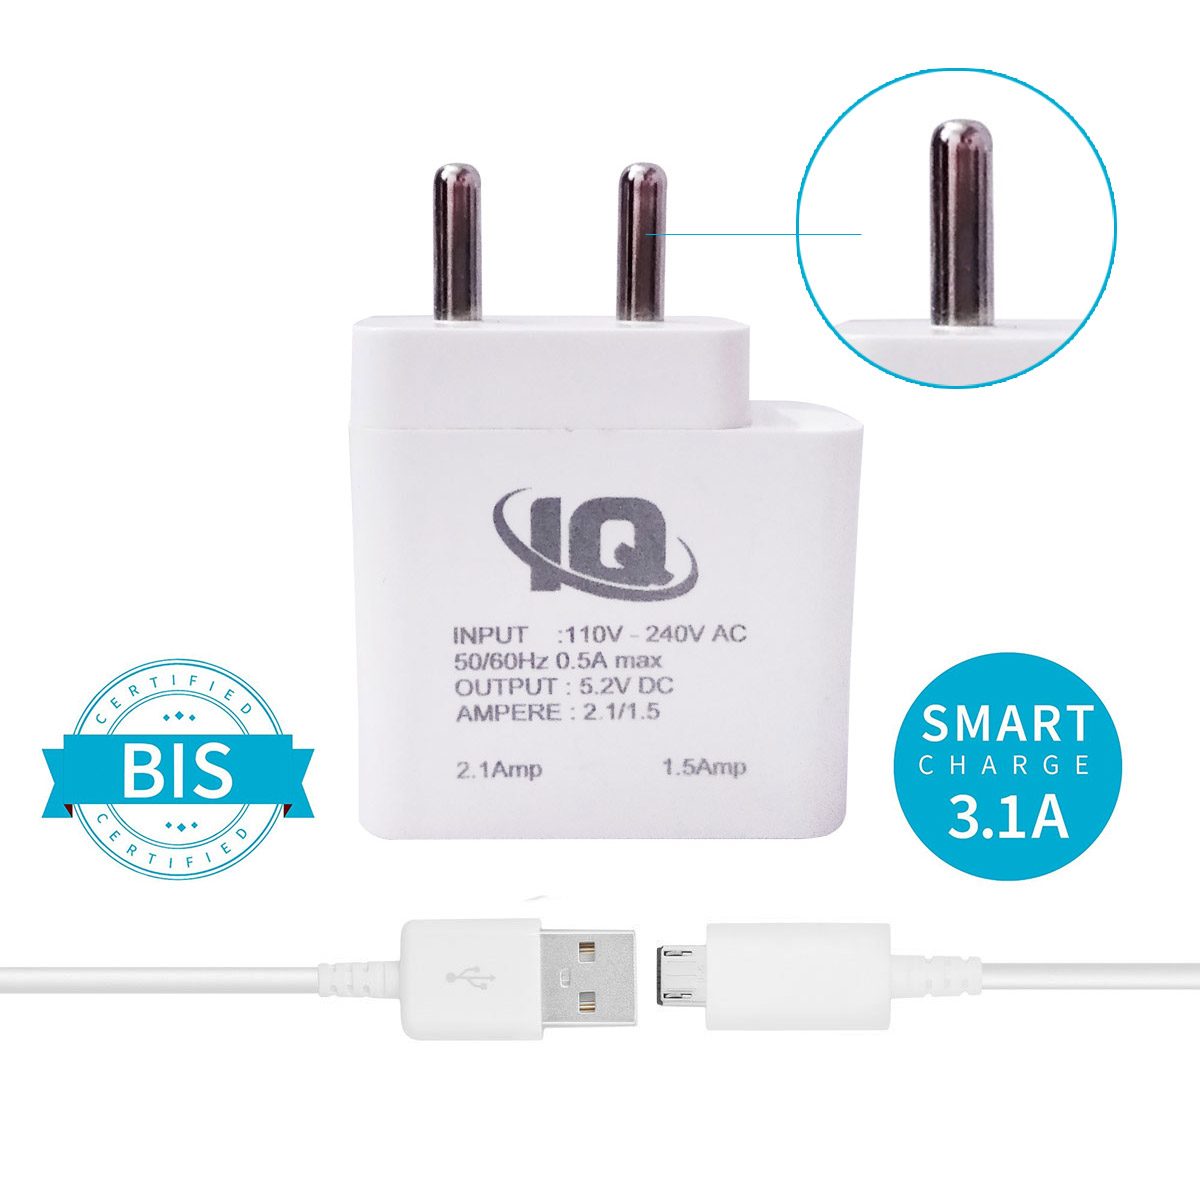 sublicart2 Redmi Note 3 Supported Wall Charger Made In India,travel Charger ,mobile Charger,dual Port Usb Plug Wall Charger Adapter With 1 Meter Micro Usb Cable